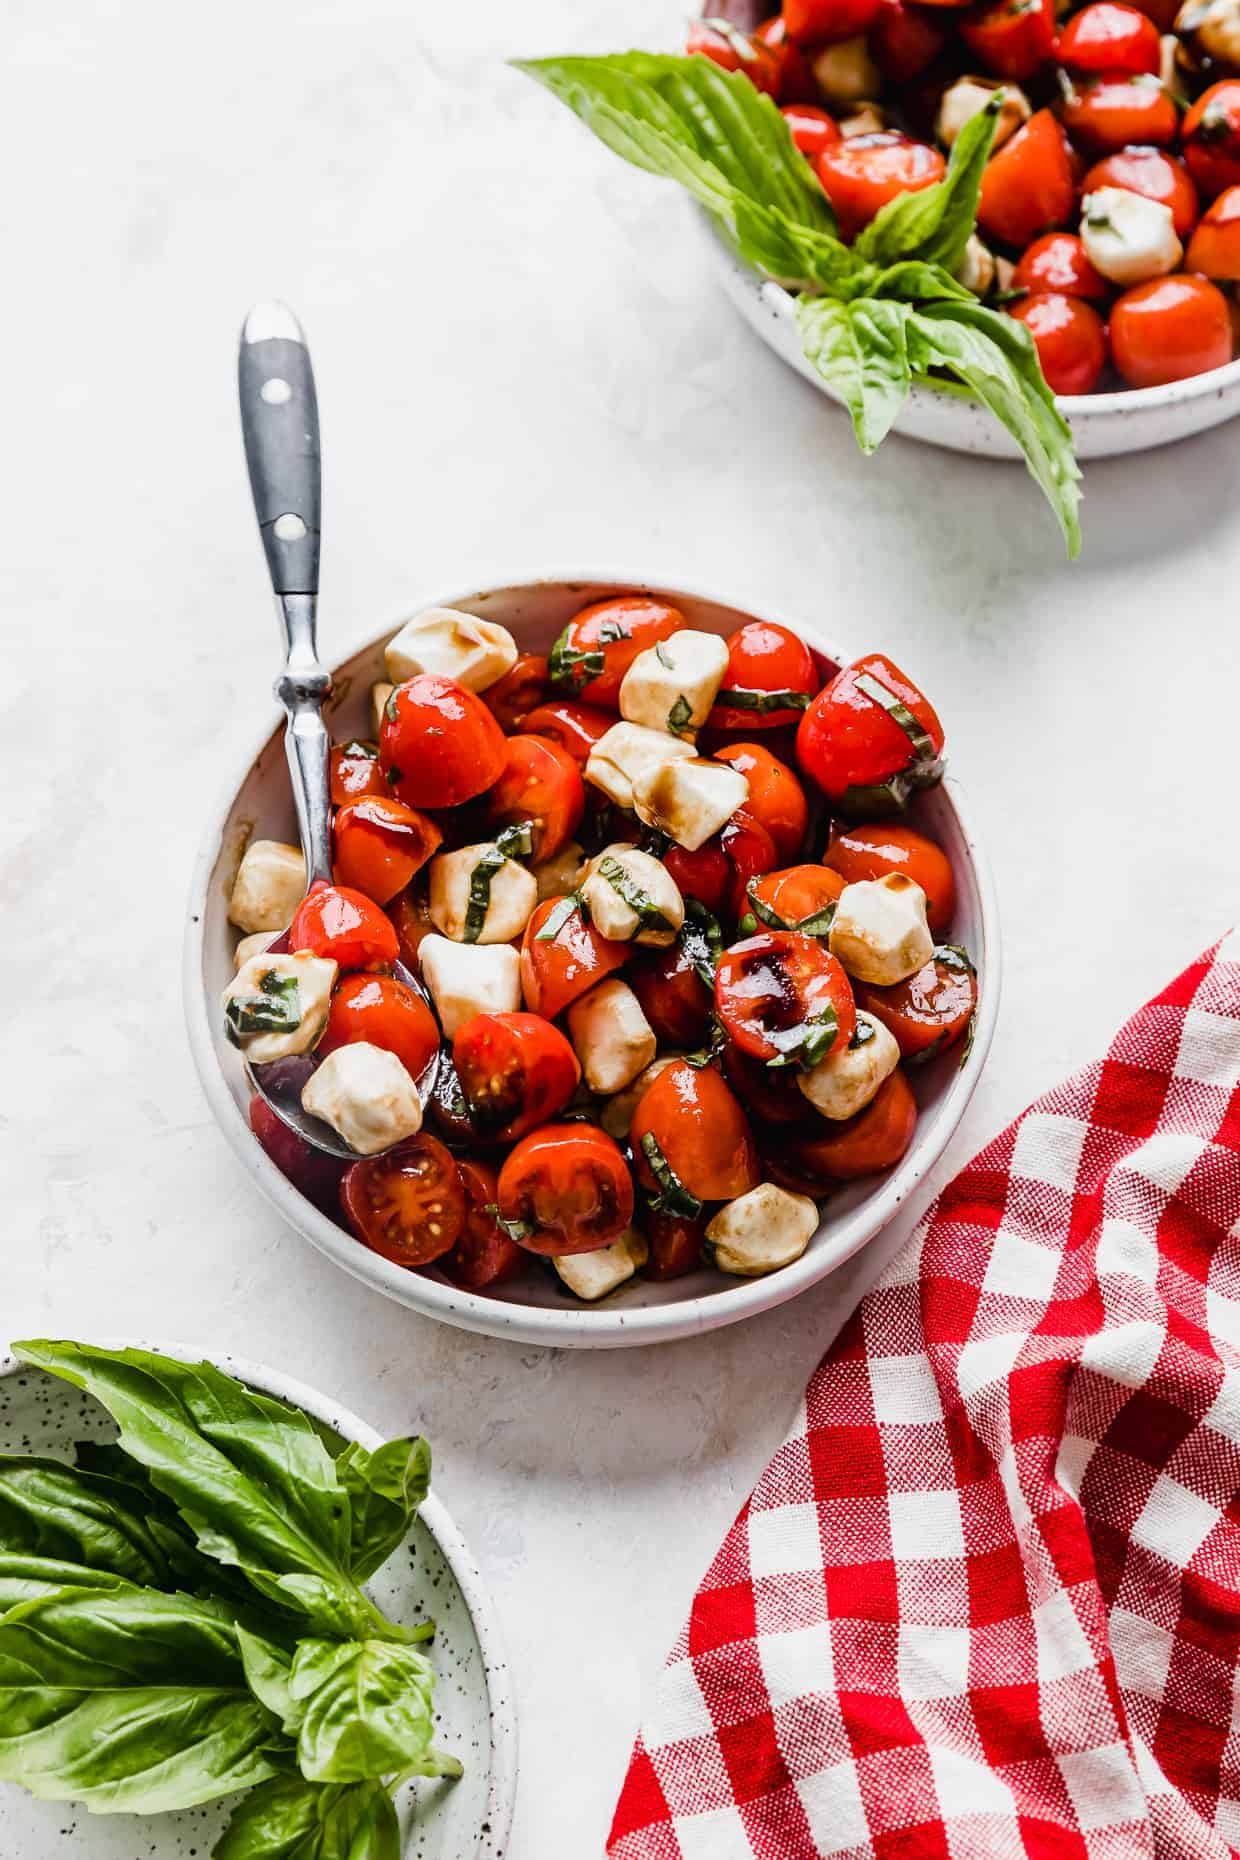 A white bowl with Cherry Tomato Caprese Salad in it, on a white background with fresh basil leaves in the foreground.